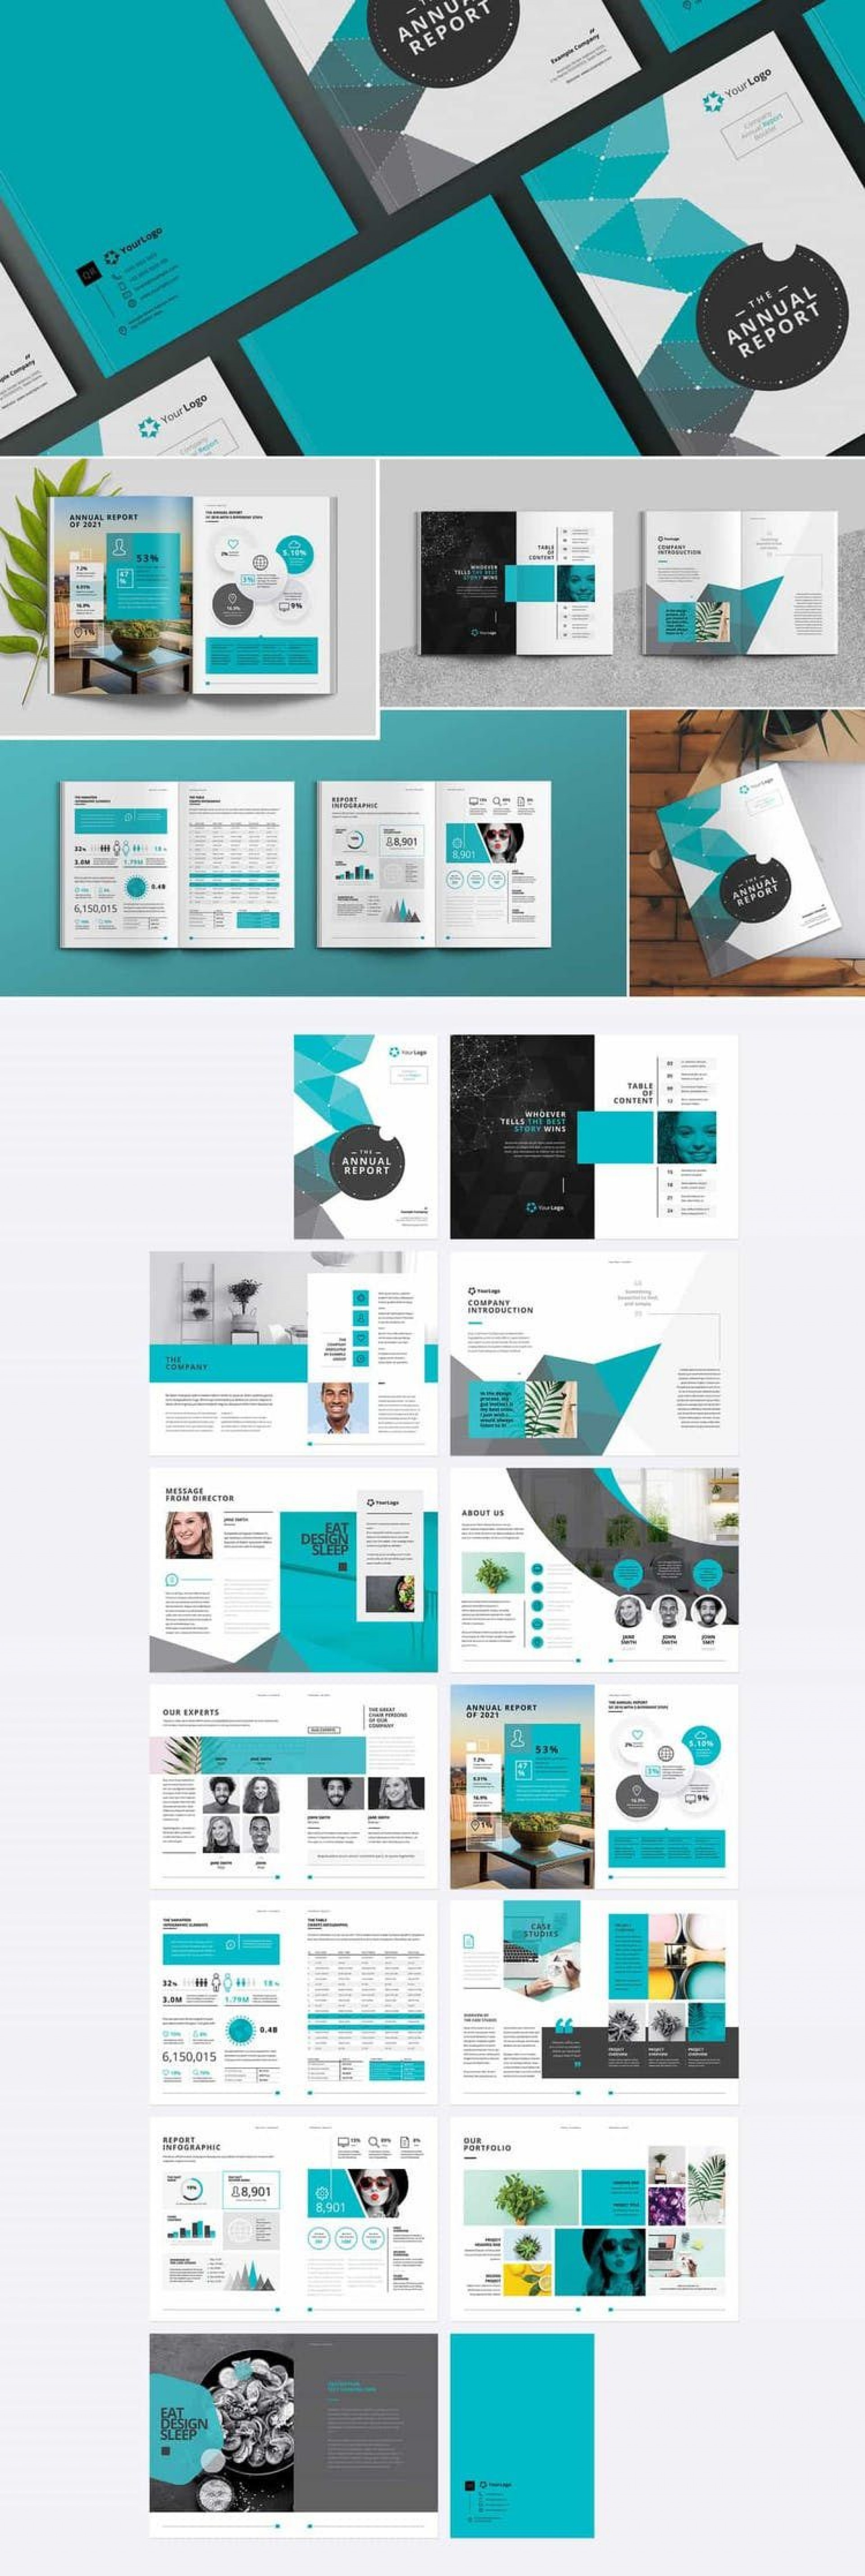 005 Archaicawful Annual Report Design Template Photo  Templates Word Timeles Free Download In1920